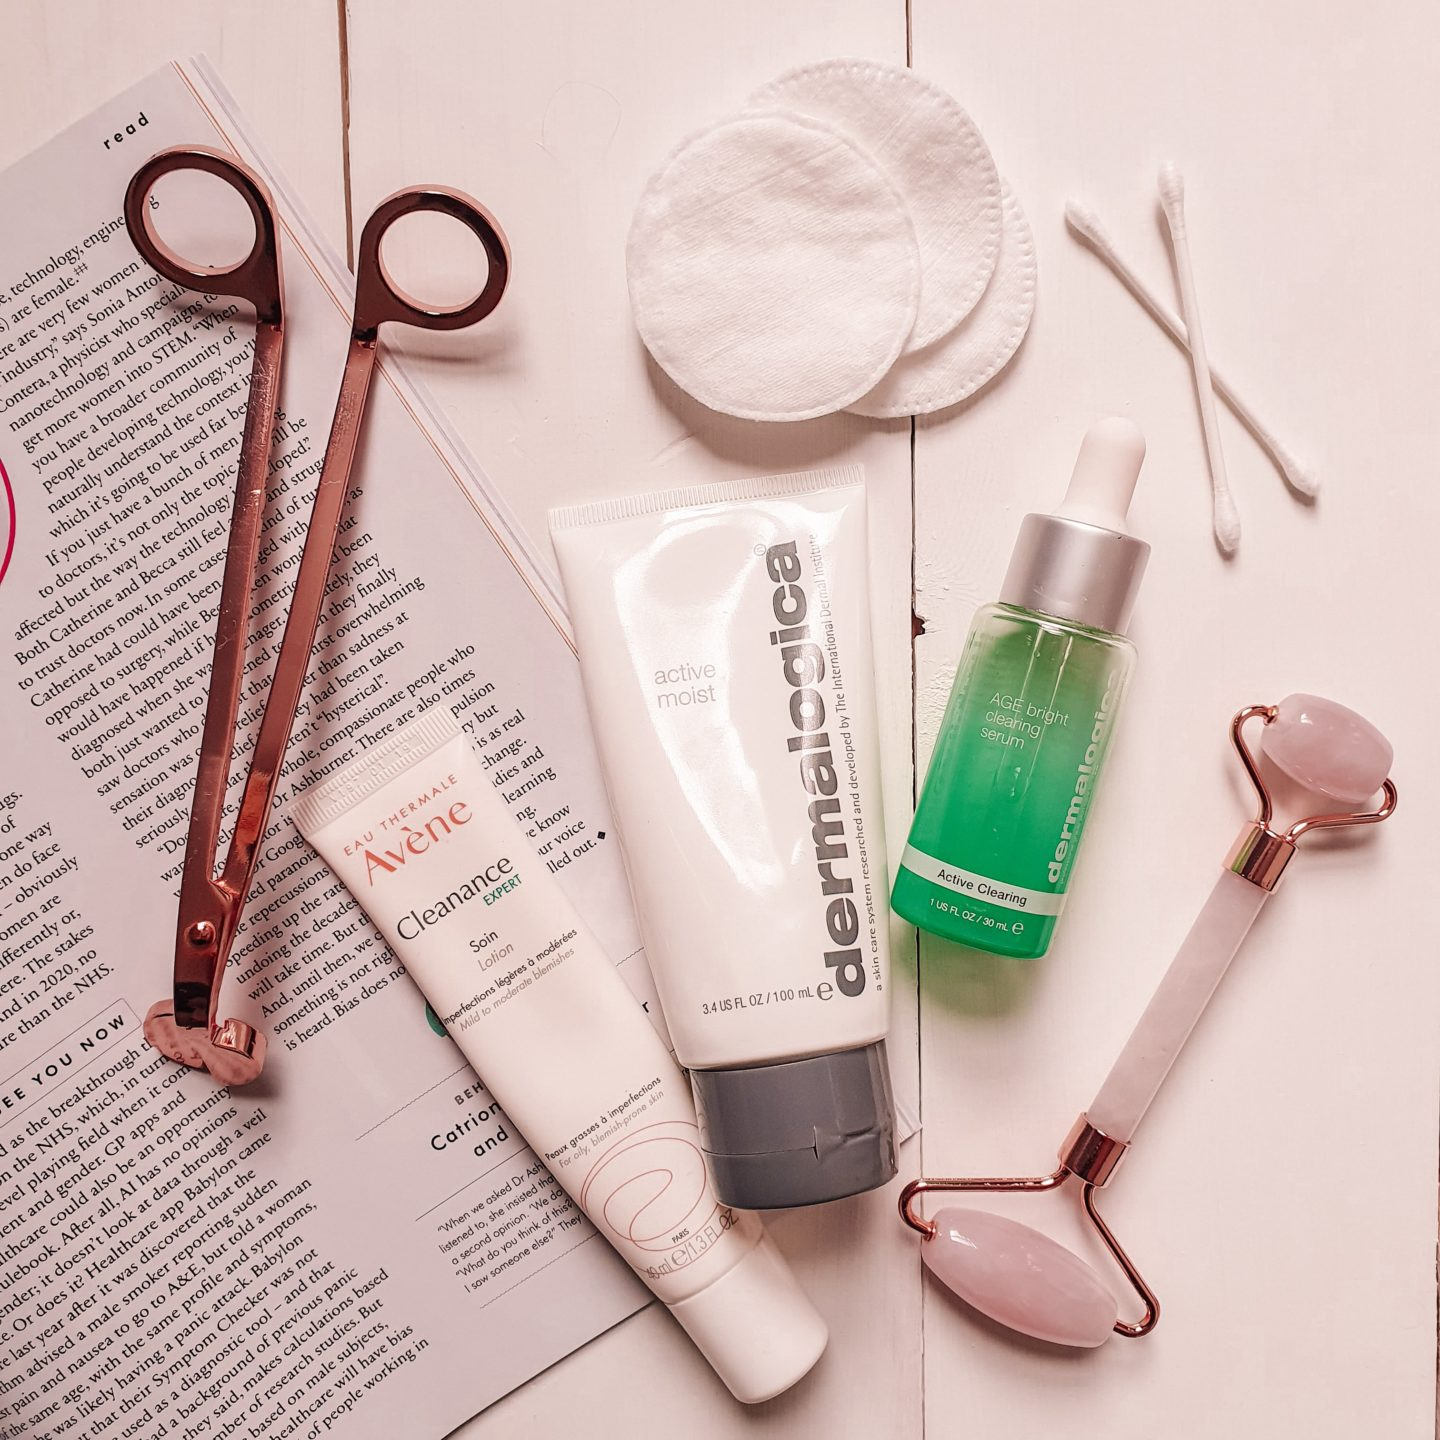 Dermalogica Active Moist Moisturiser and Avène Cleanance Expert Lotion and Dermalogica Age Bright Clearing Serum